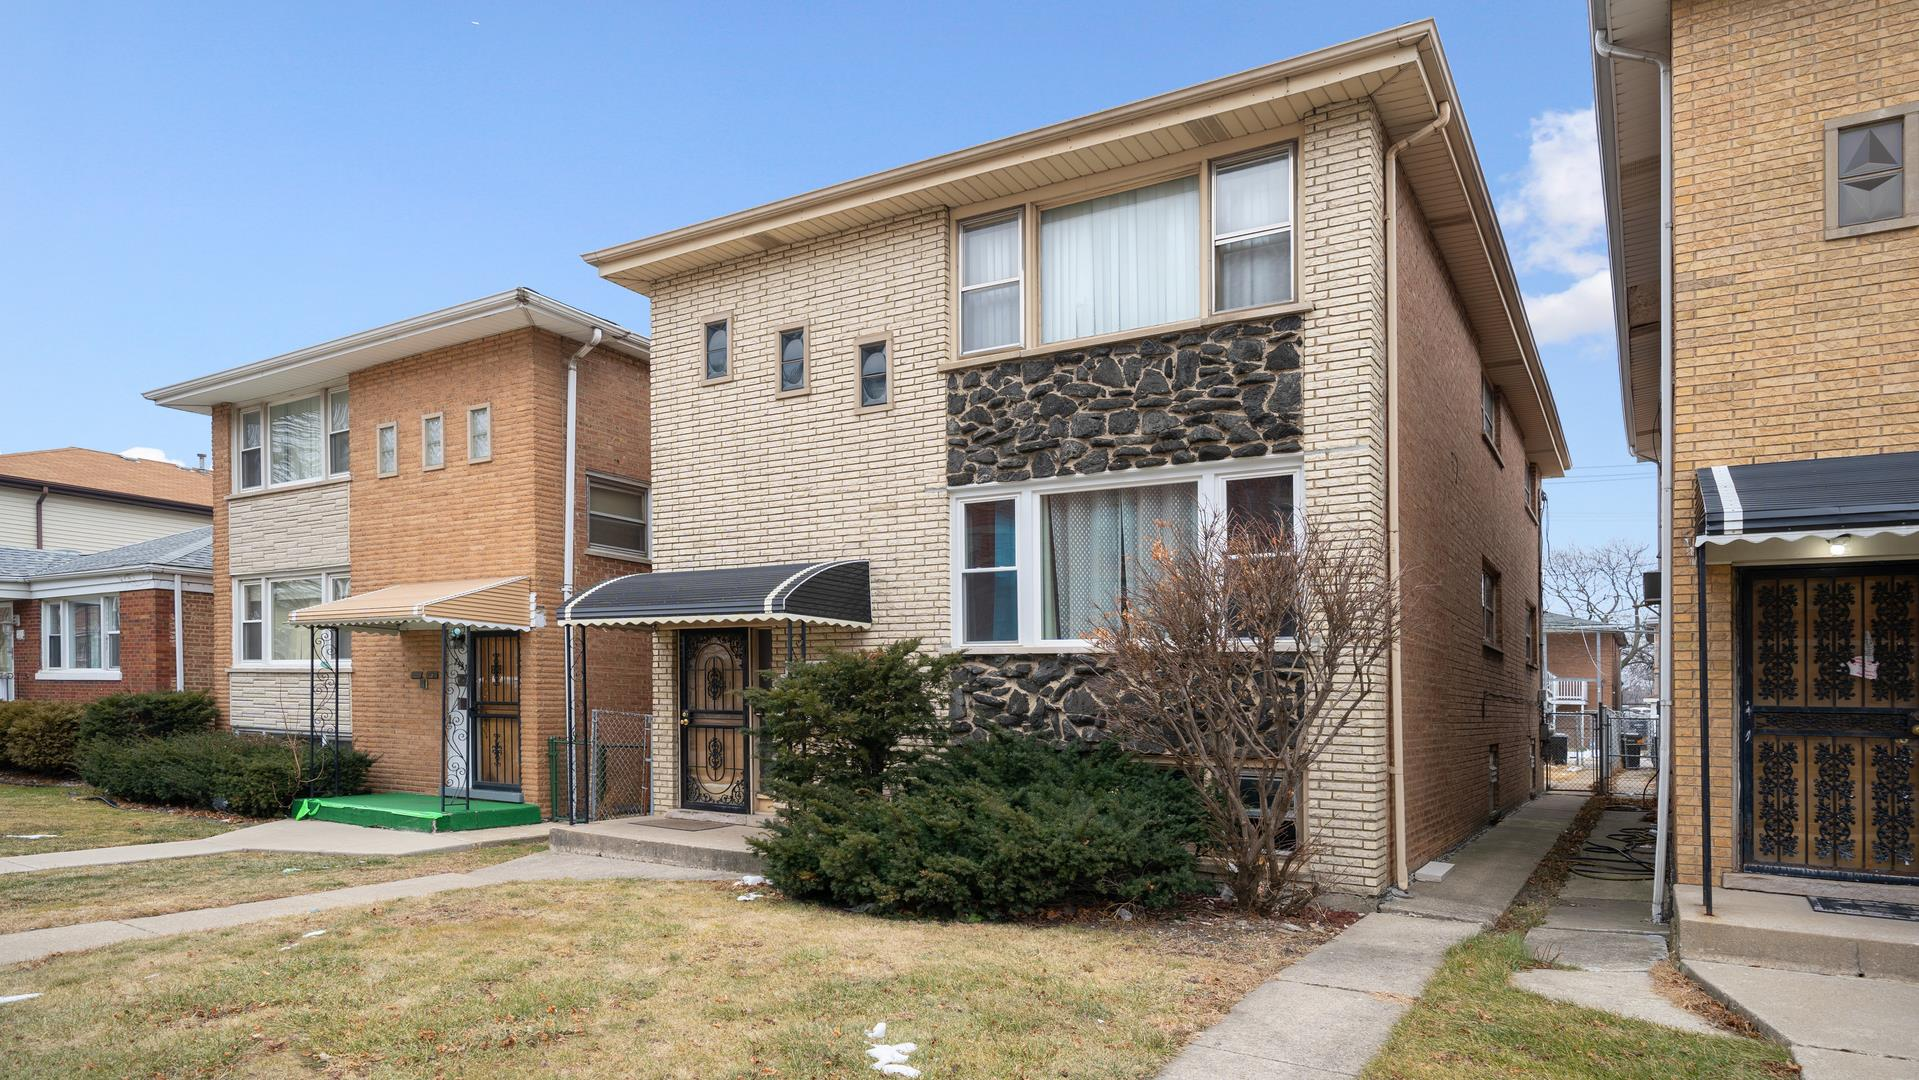 7441 S Rockwell Street, Chicago, IL 60629 - #: 10976148